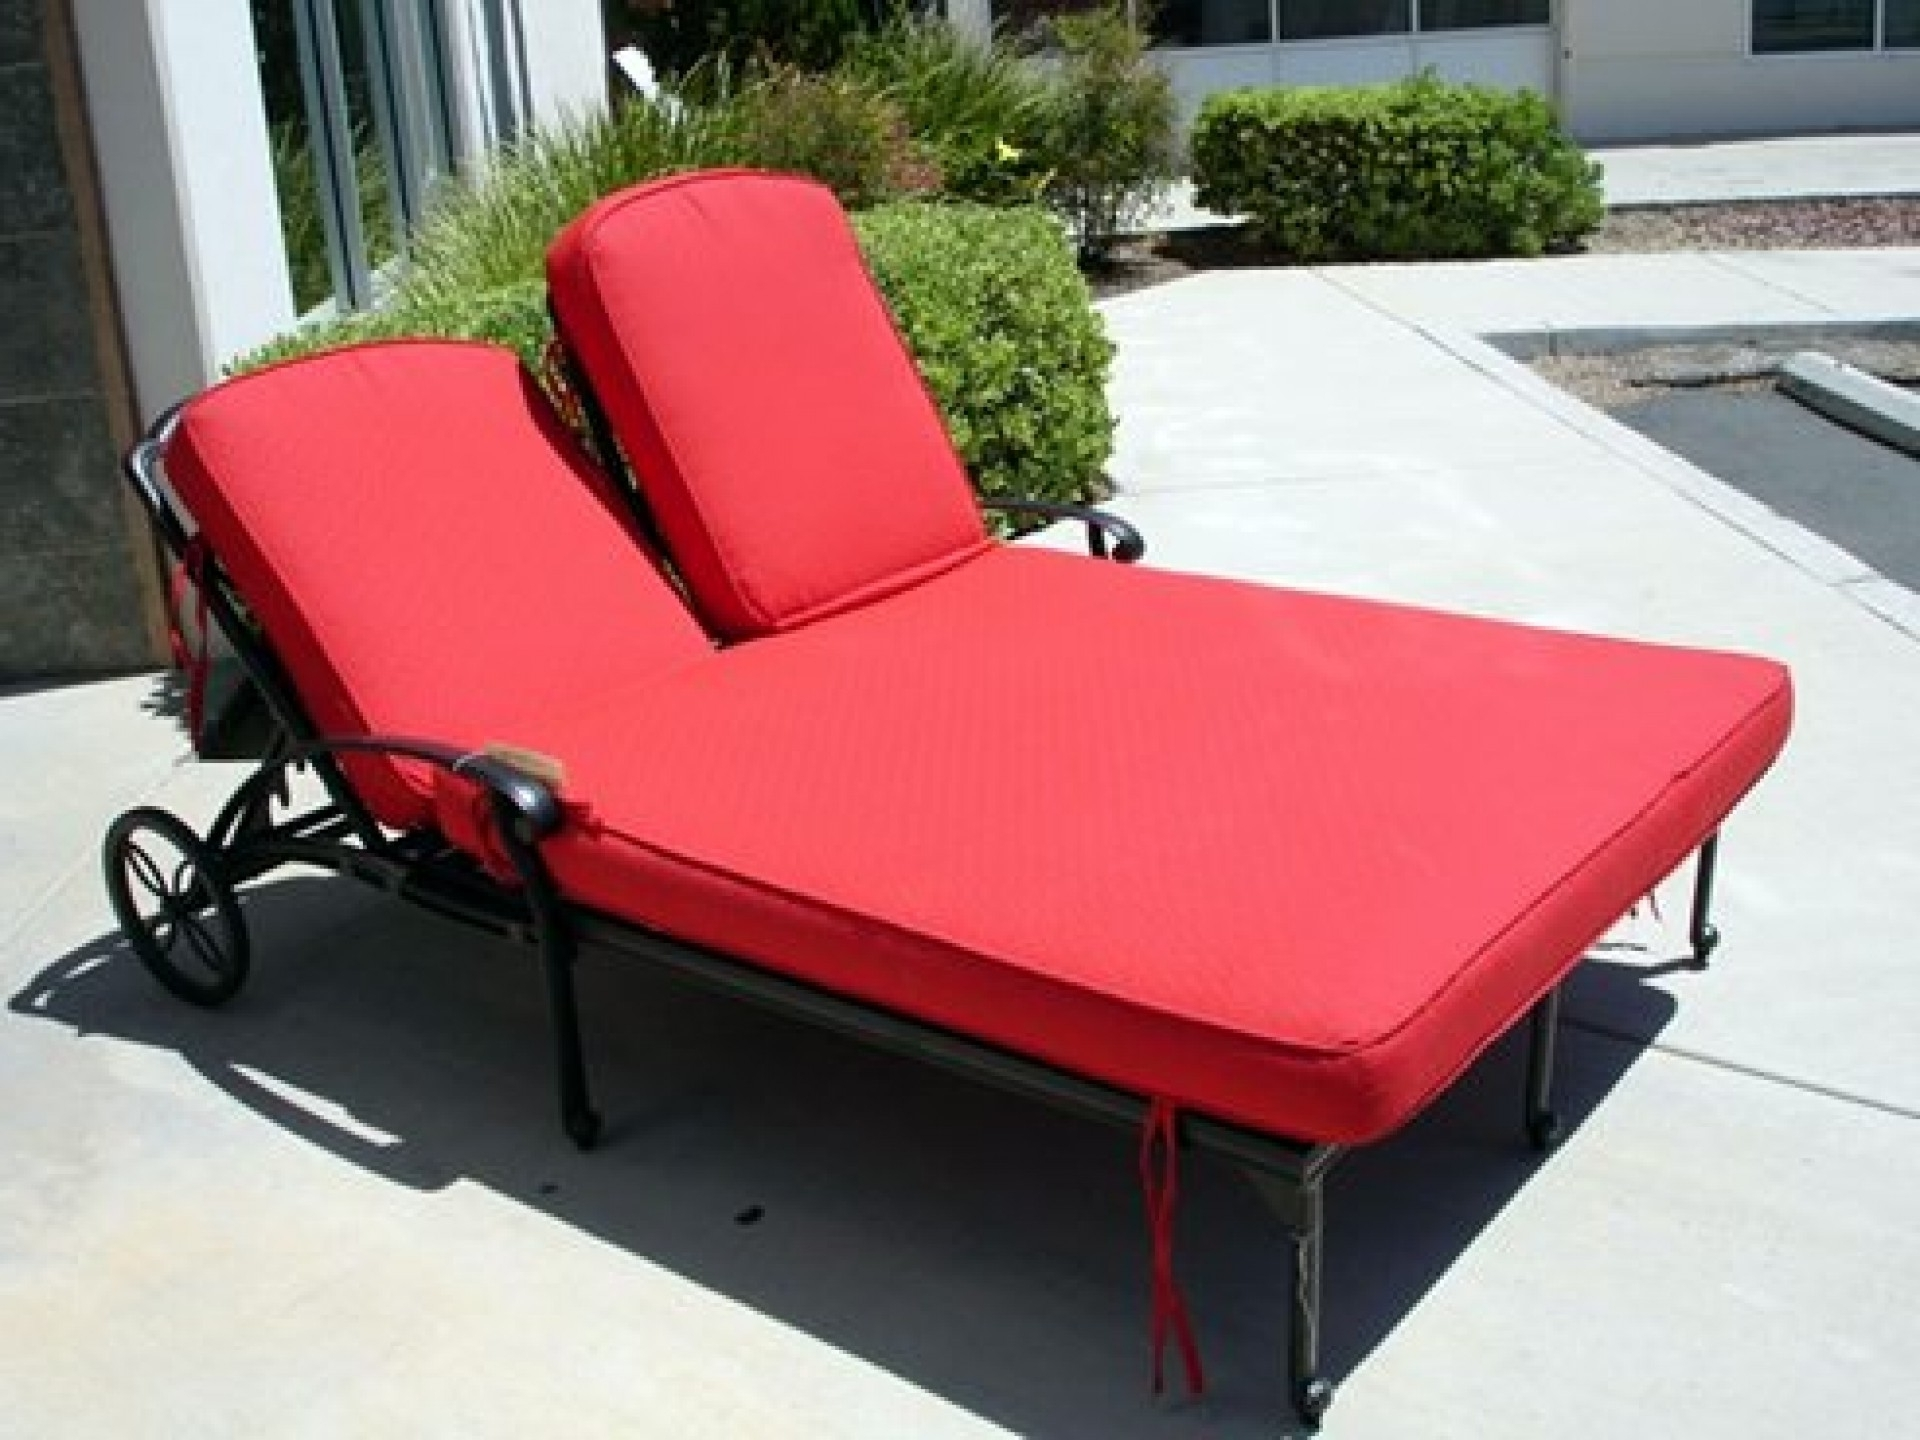 Outdoor Cushions For Chaise Lounge Chairs Regarding Popular Convertible Chair : For Outside Furniture Chaise Lounge Chair Pads (View 2 of 15)